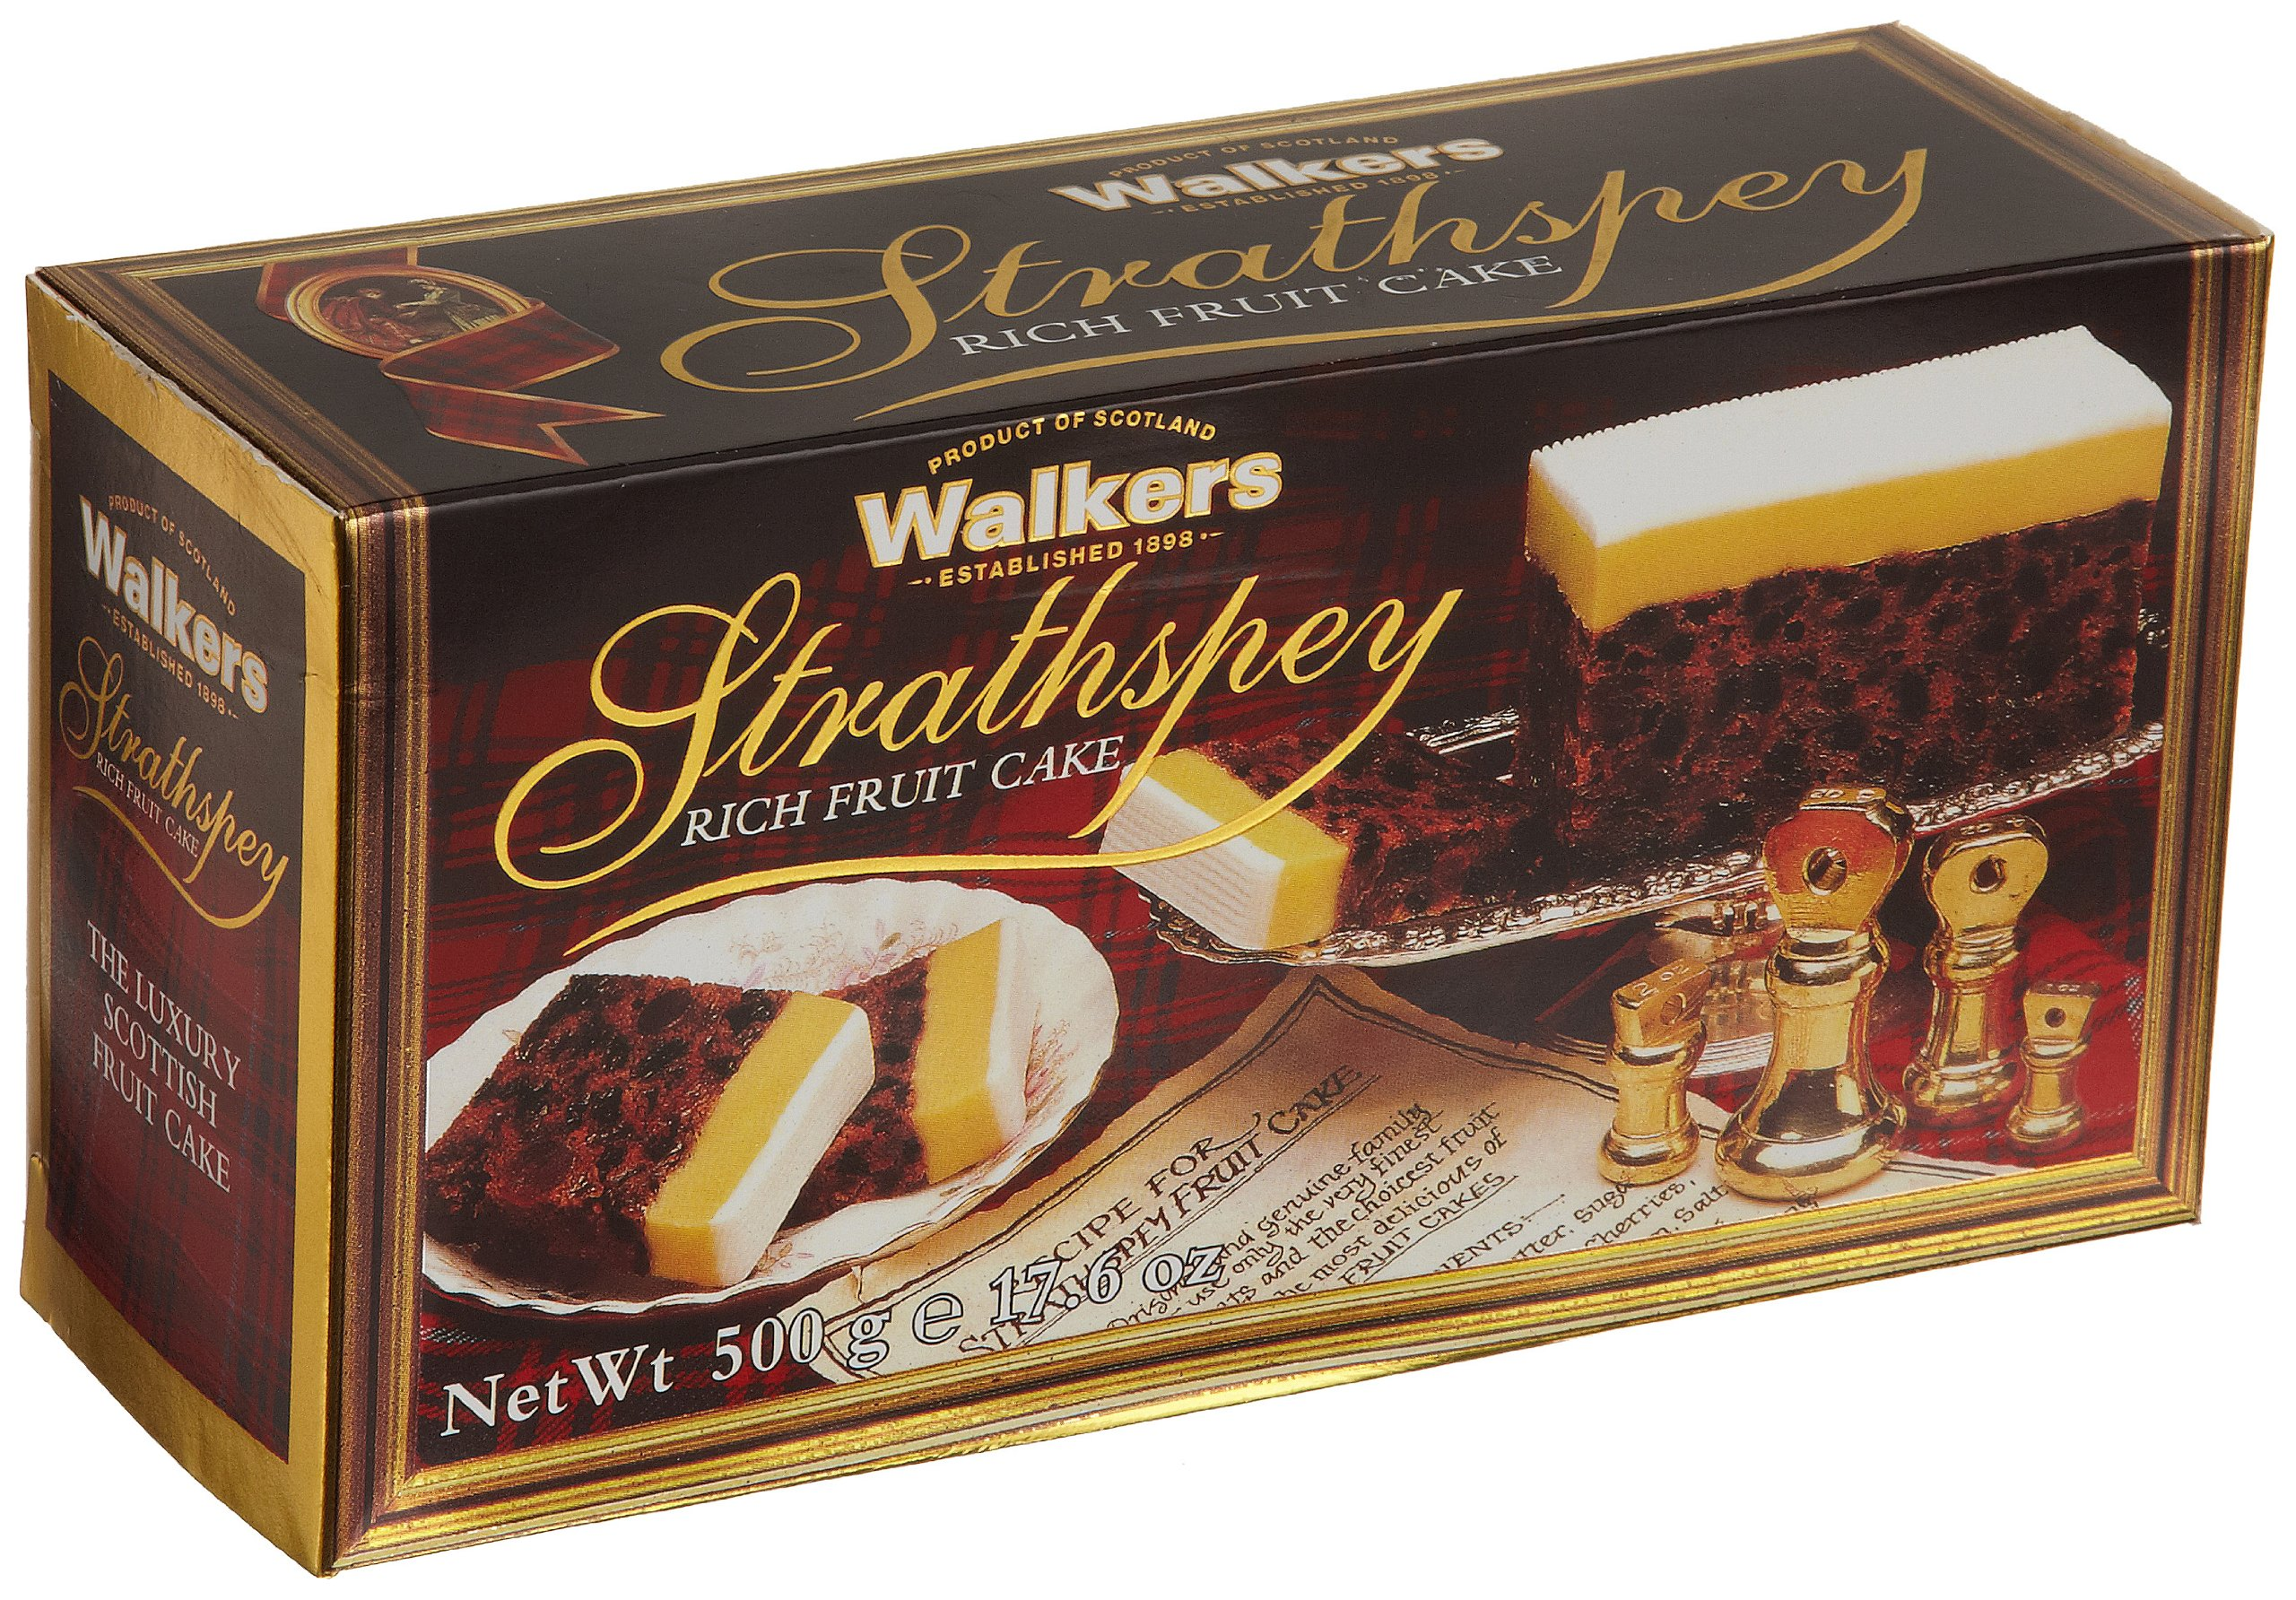 Walkers Shortbread Strathspey Rich Fruit Cake, 17.6 Ounce Box Traditional Fruit Cake from the Scottish Highlands with Dried Fruits, Spices & Almond Marzipan by Walkers Shortbread (Image #1)